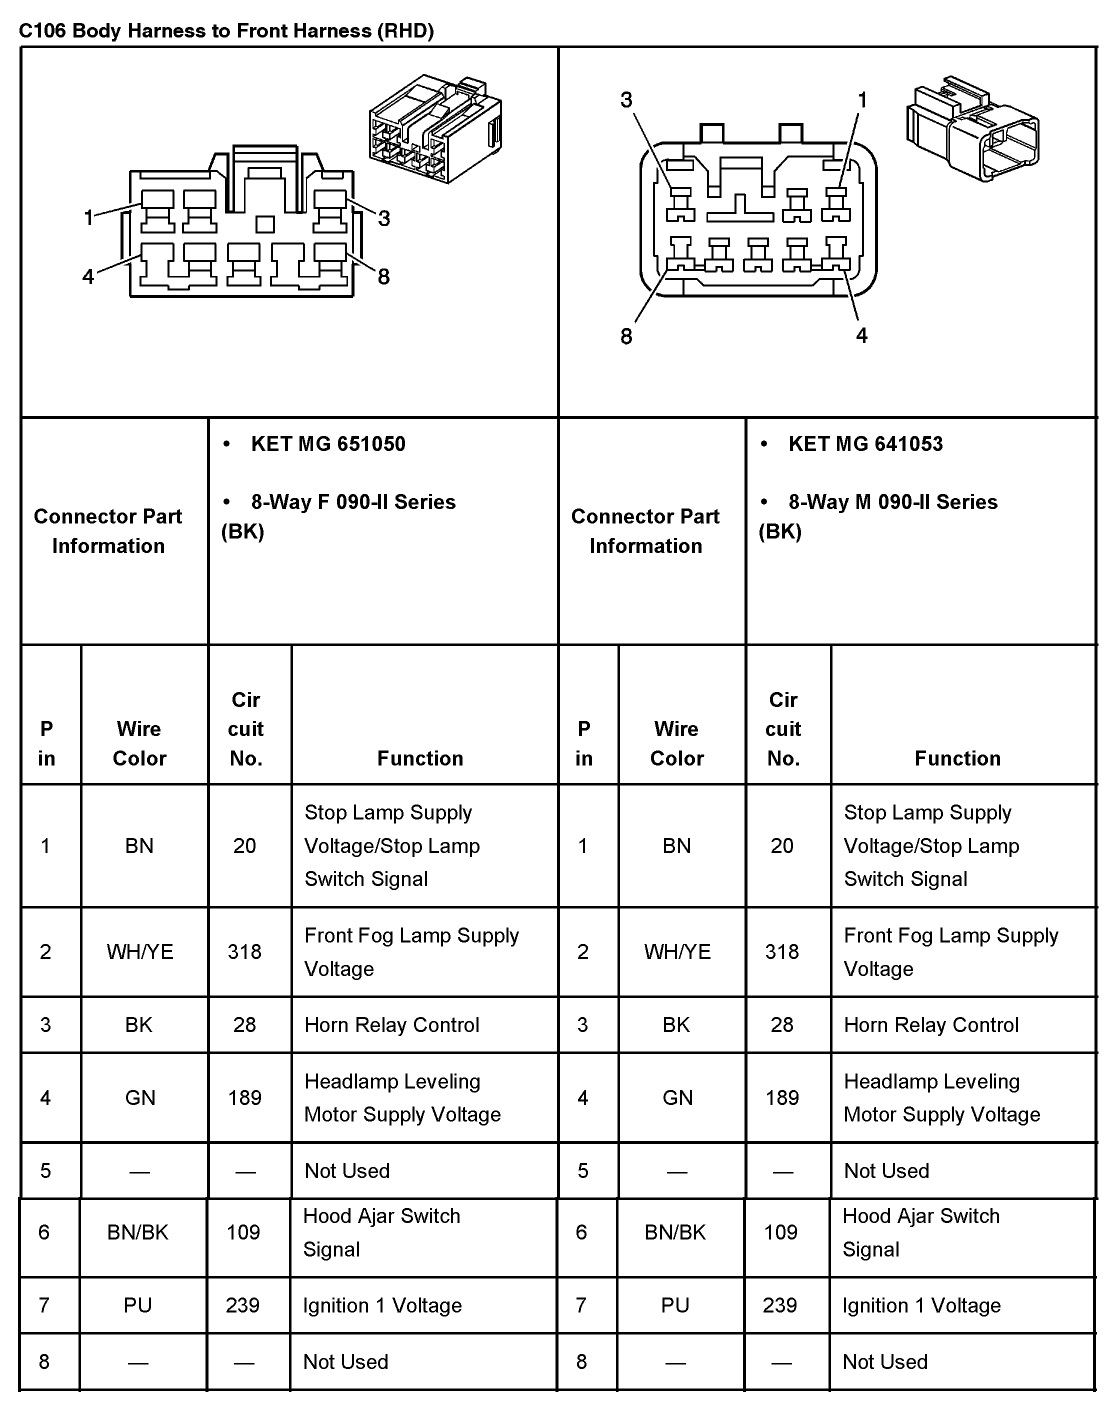 2005 aveo master connector list and diagrams 2005 chevy aveo ignition wiring  diagram 2005 chevy aveo ignition wiring diagram